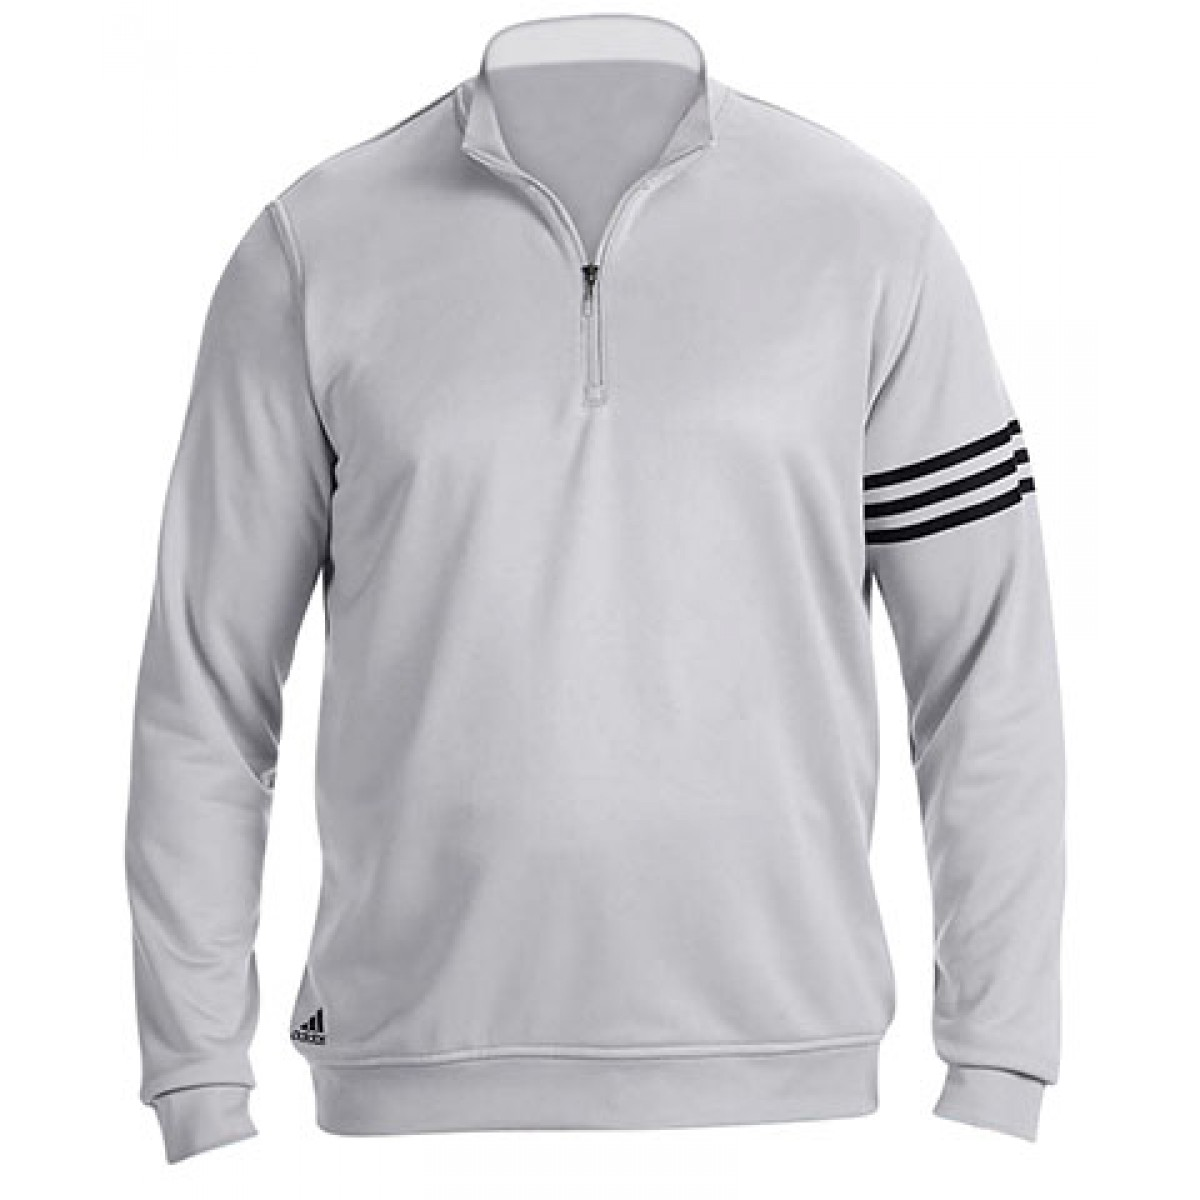 Adidas Men's 3-Stripes Pullover-Gray -3XL